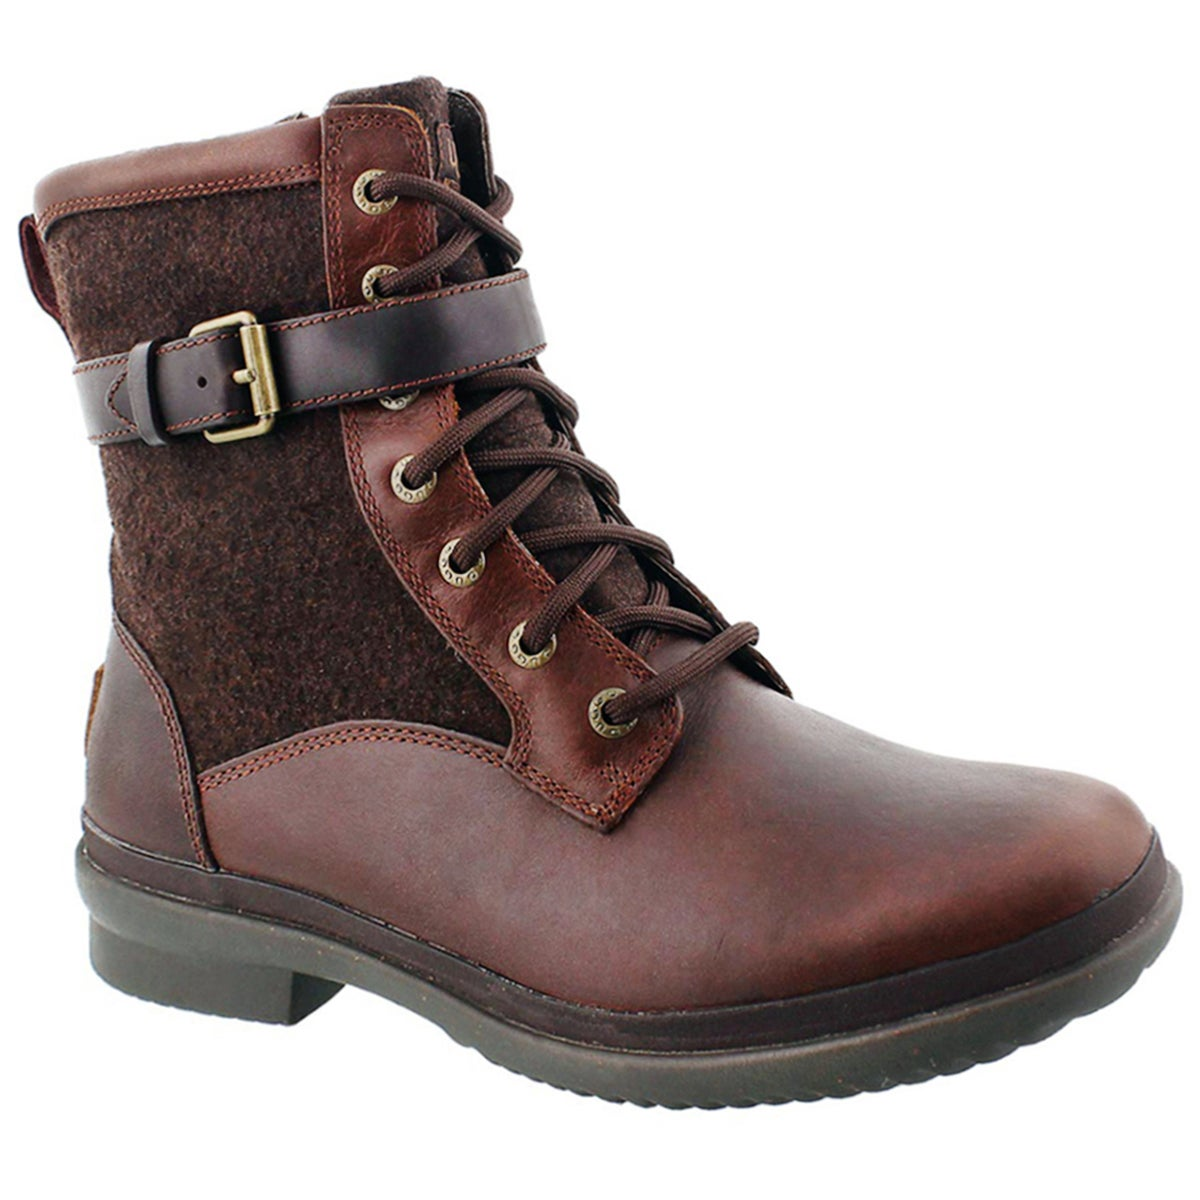 Women's KESEY chestnut waterproof lace up boots